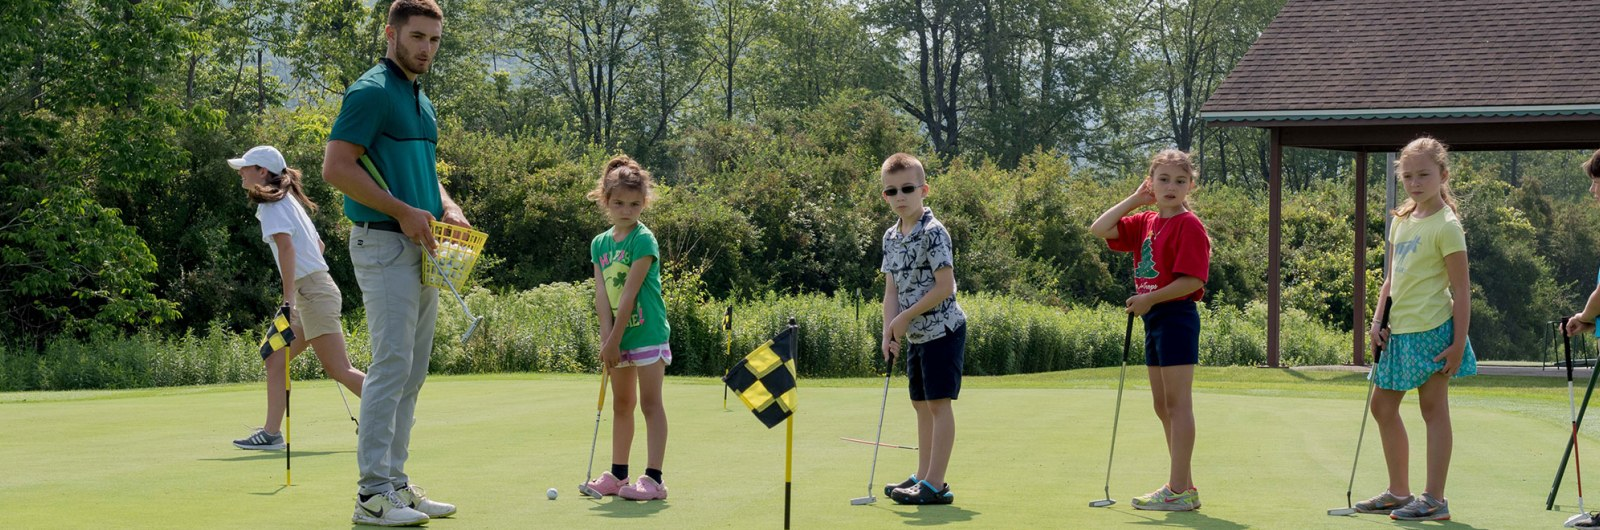 Group of children practicing putting with golf clinic instructor